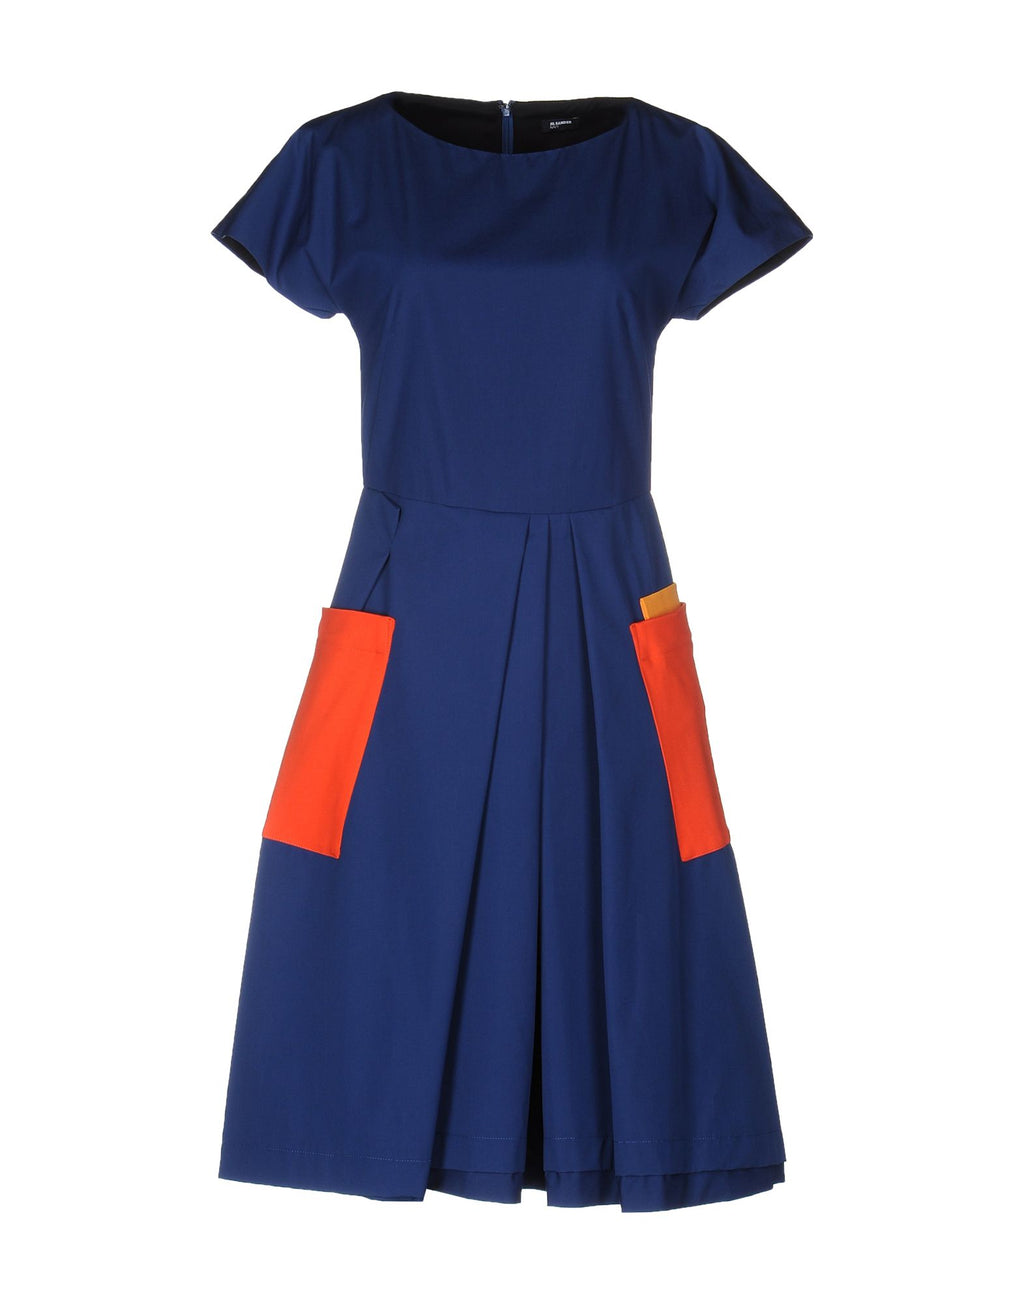 Jil Sander Cotton Blue Dress with Exposed Pockets, Size XS